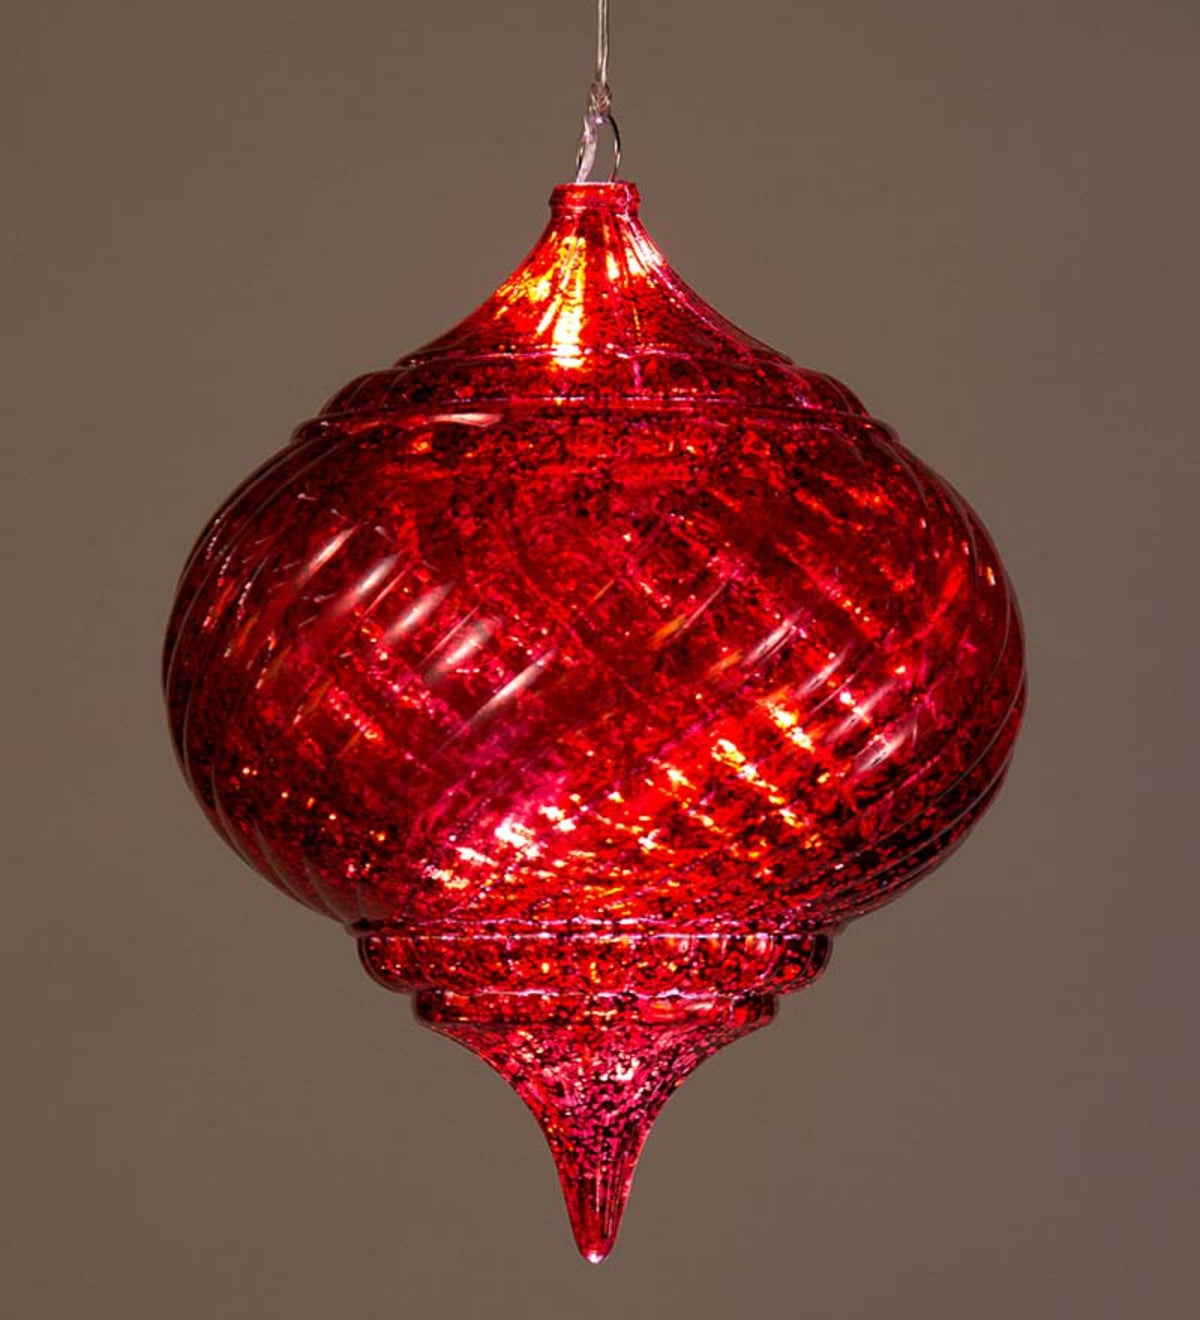 Large Outdoor Solar Color-Changing Finial Ornament - Red